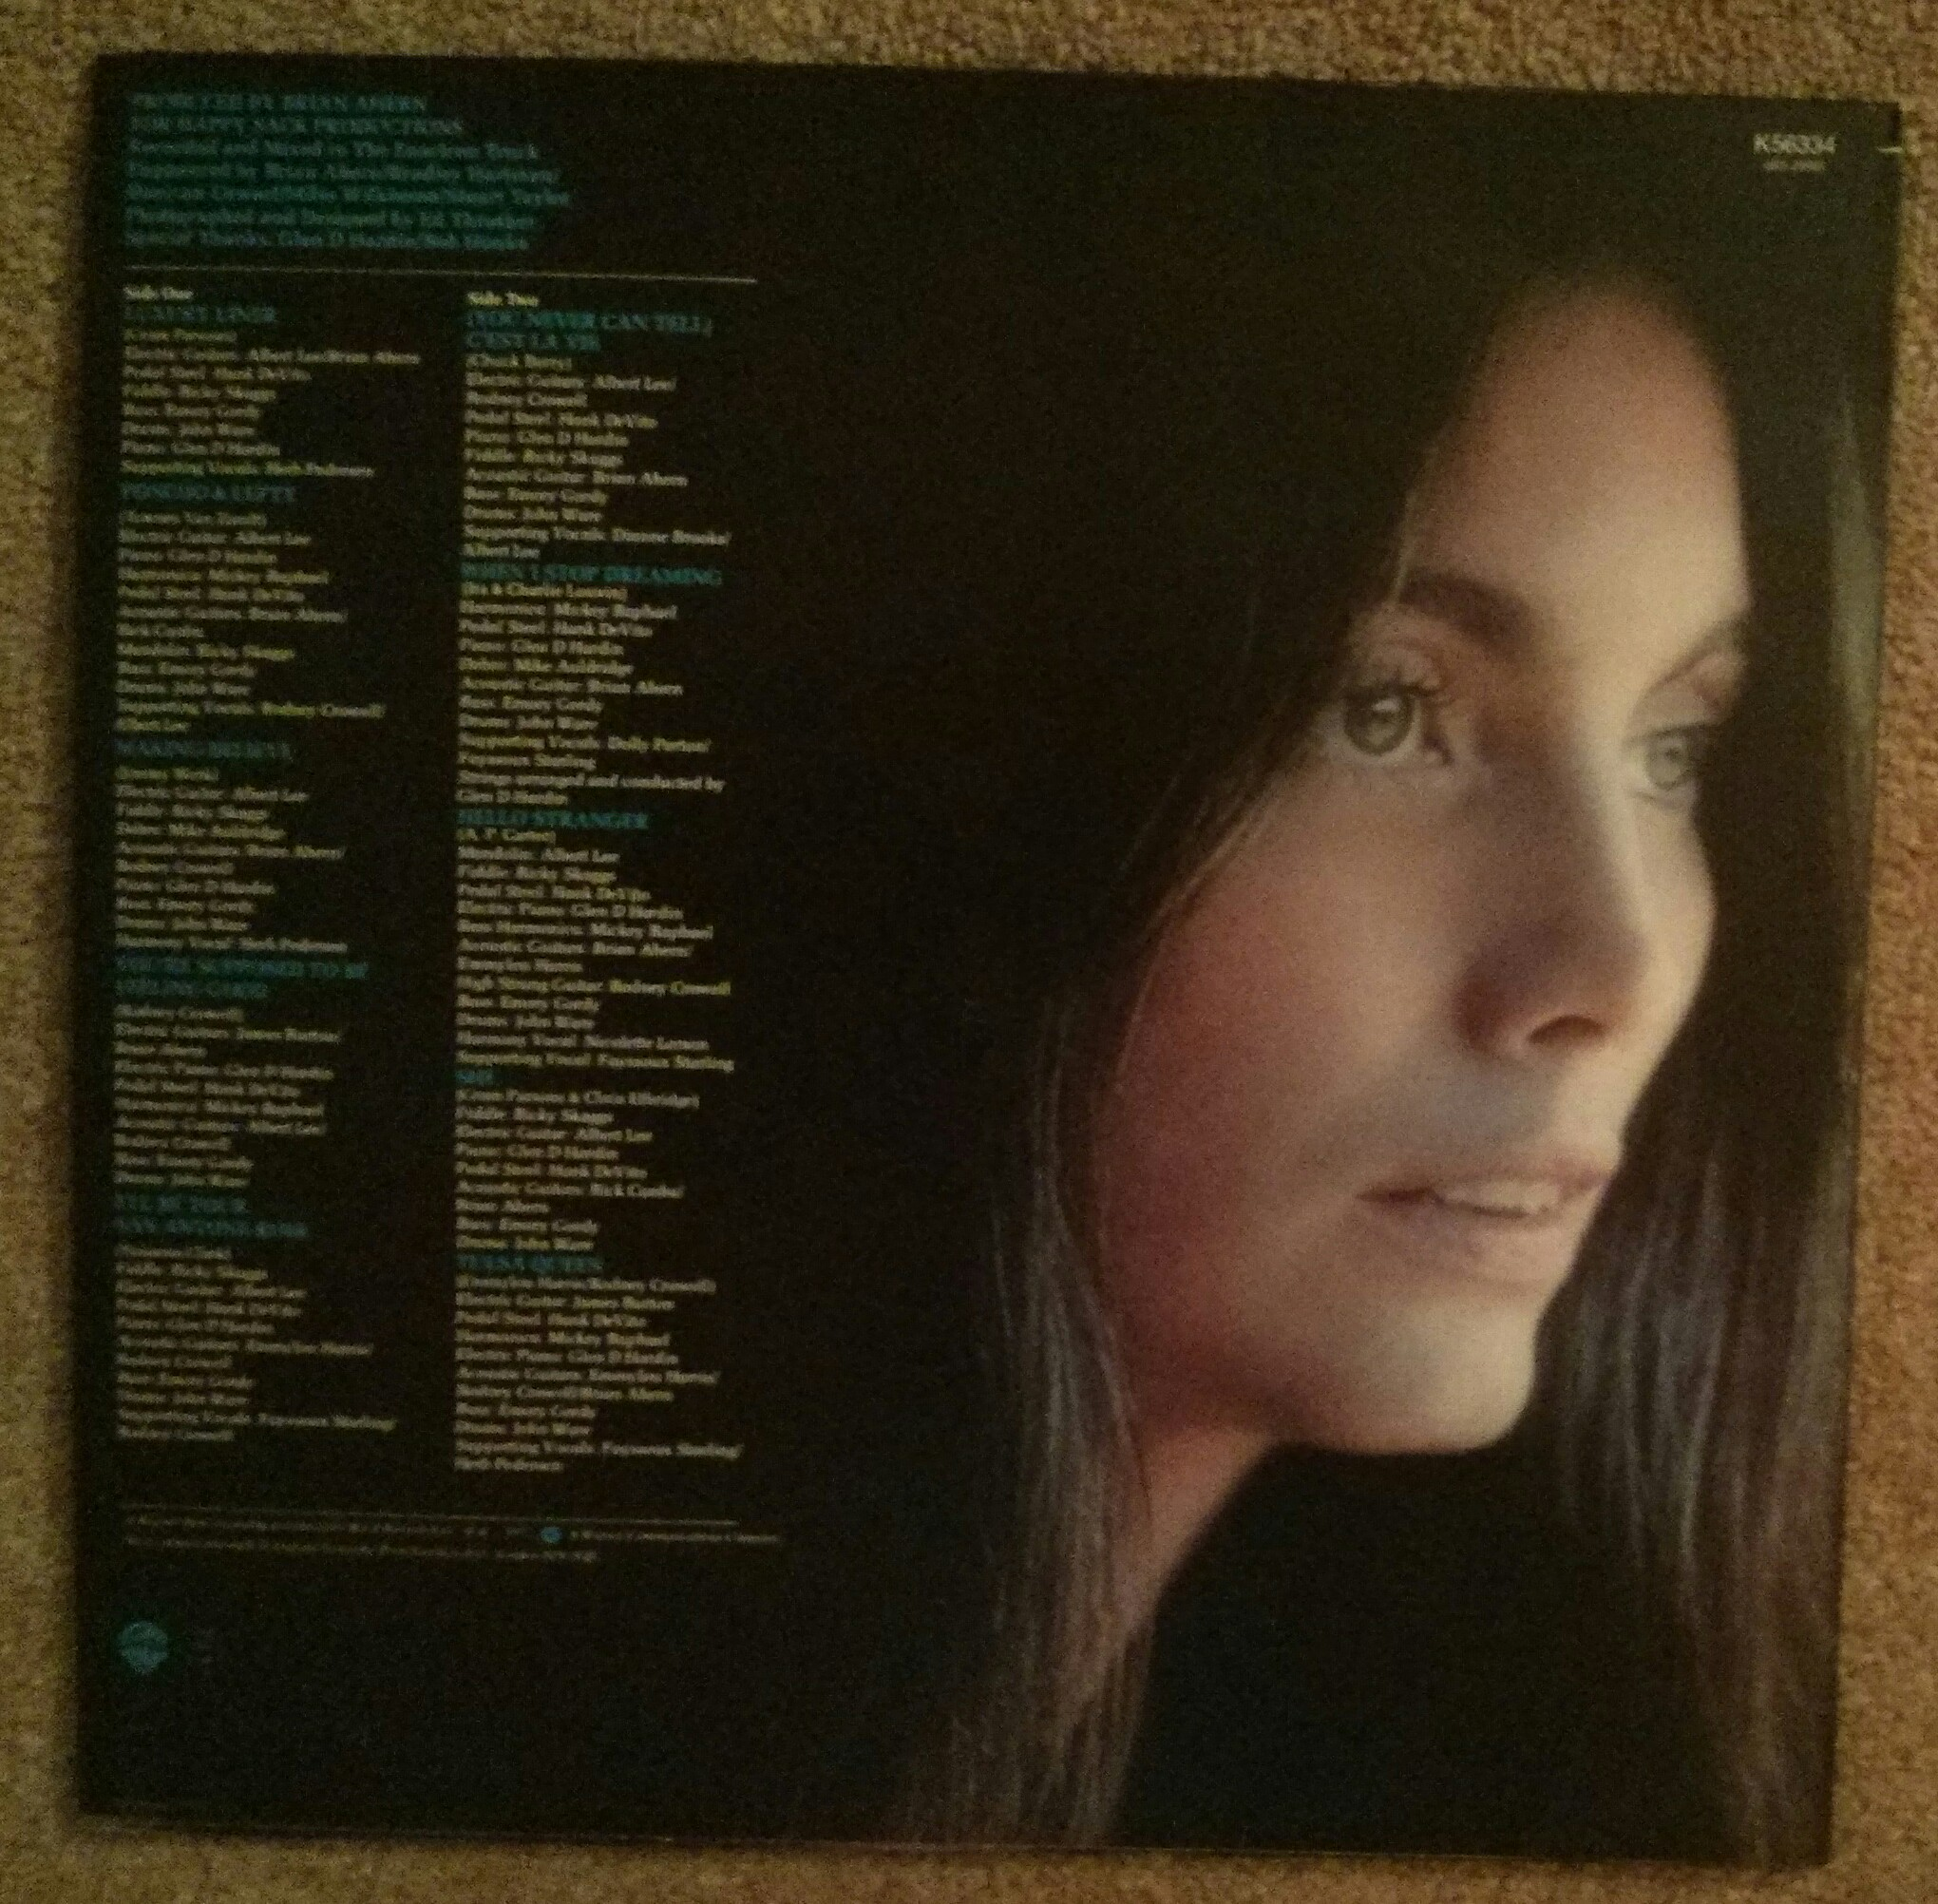 emmylou harris luxury liner - photo #22